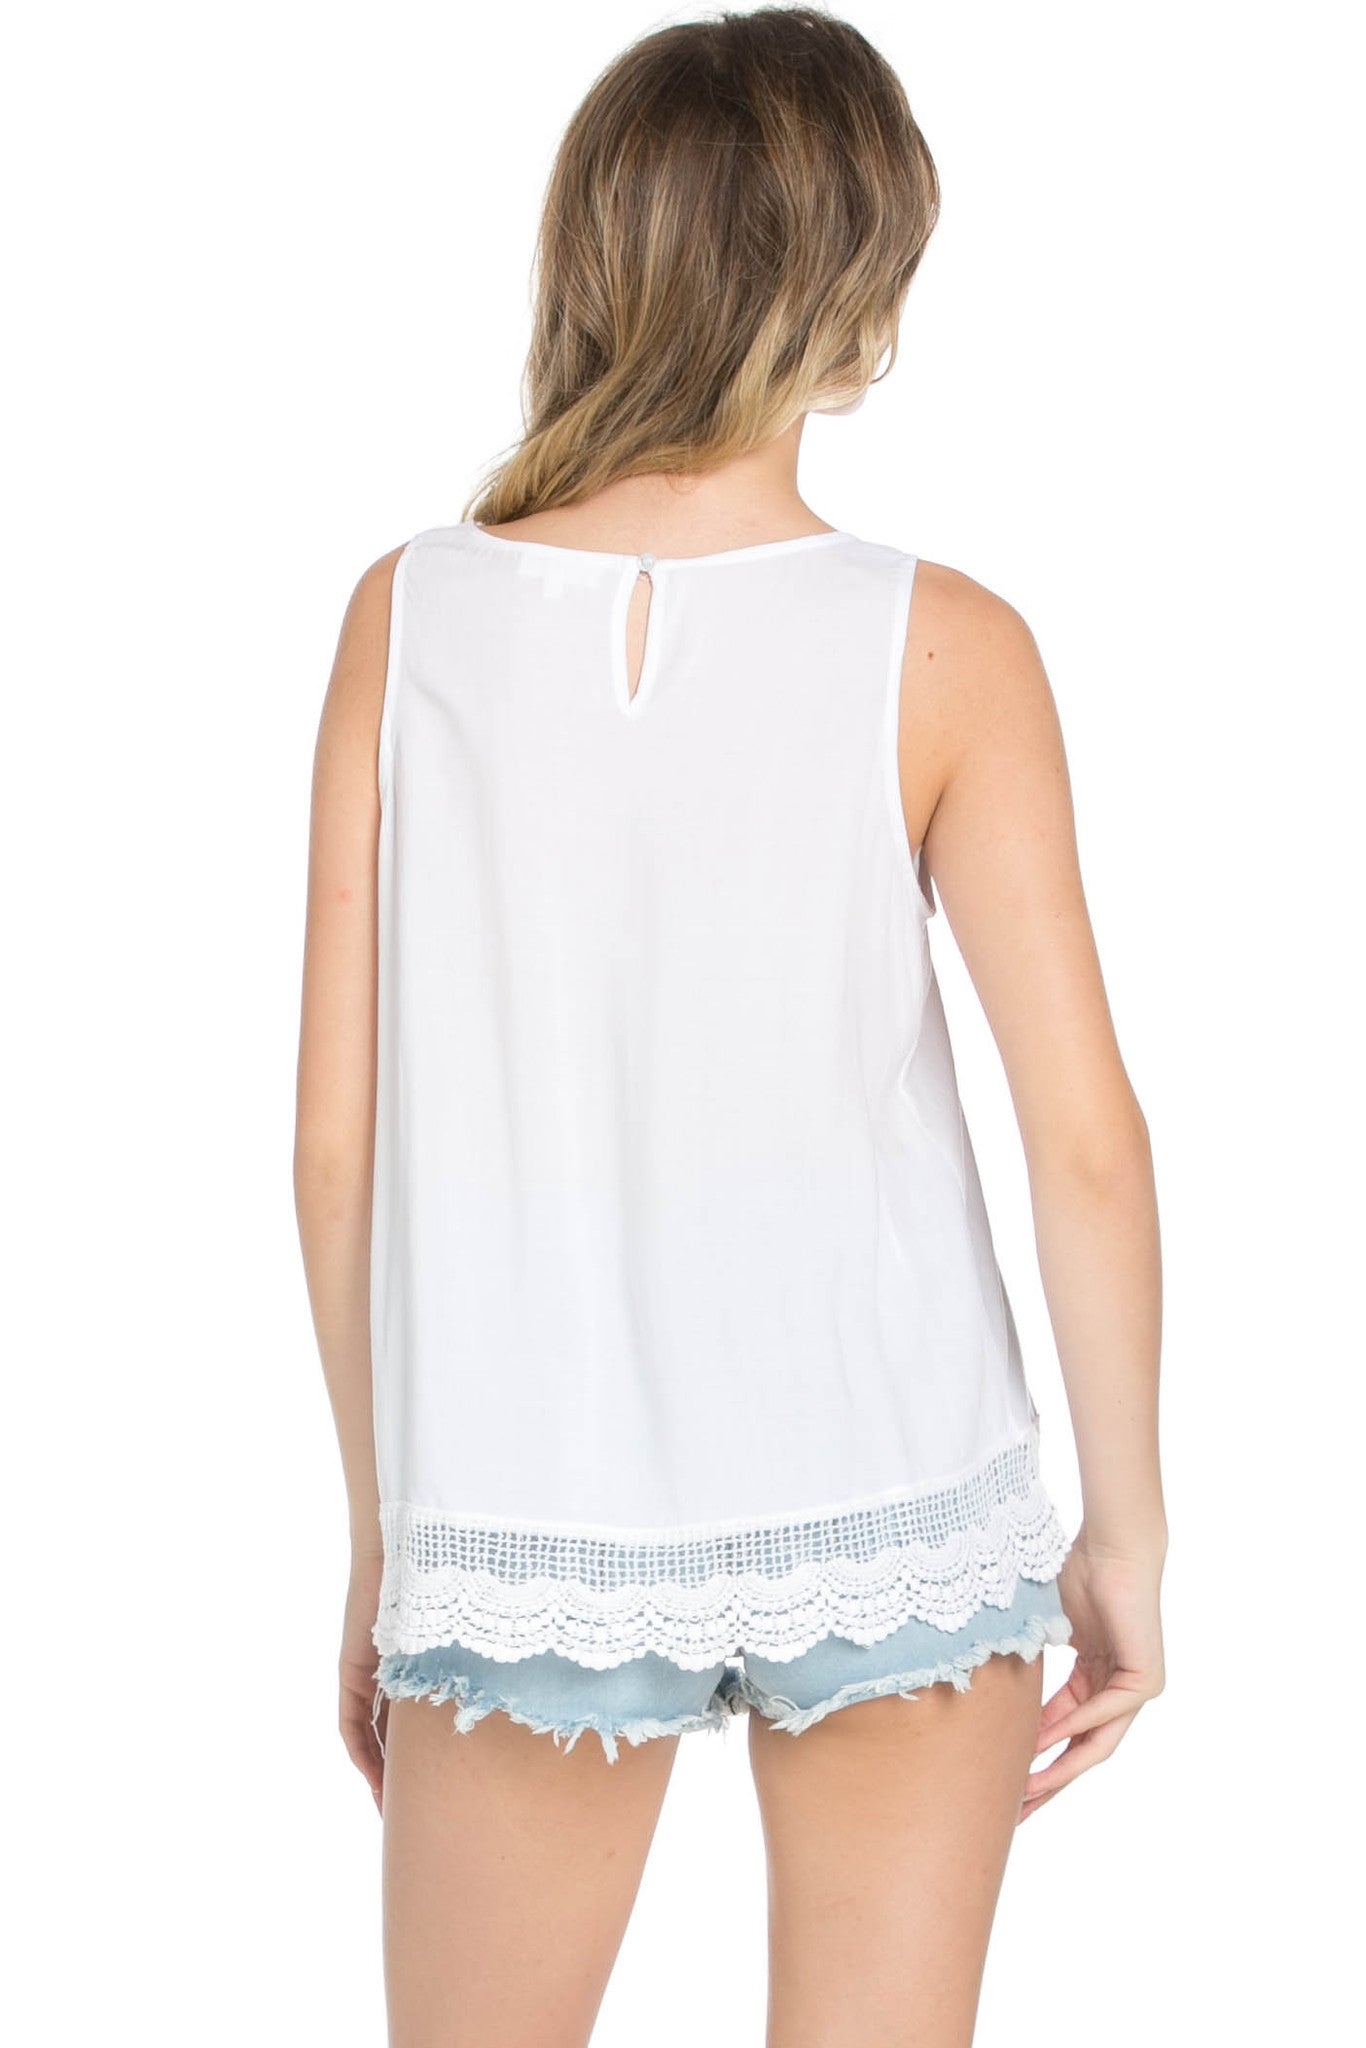 Crochets and Lace Ivory Top - Tops - My Yuccie - 7